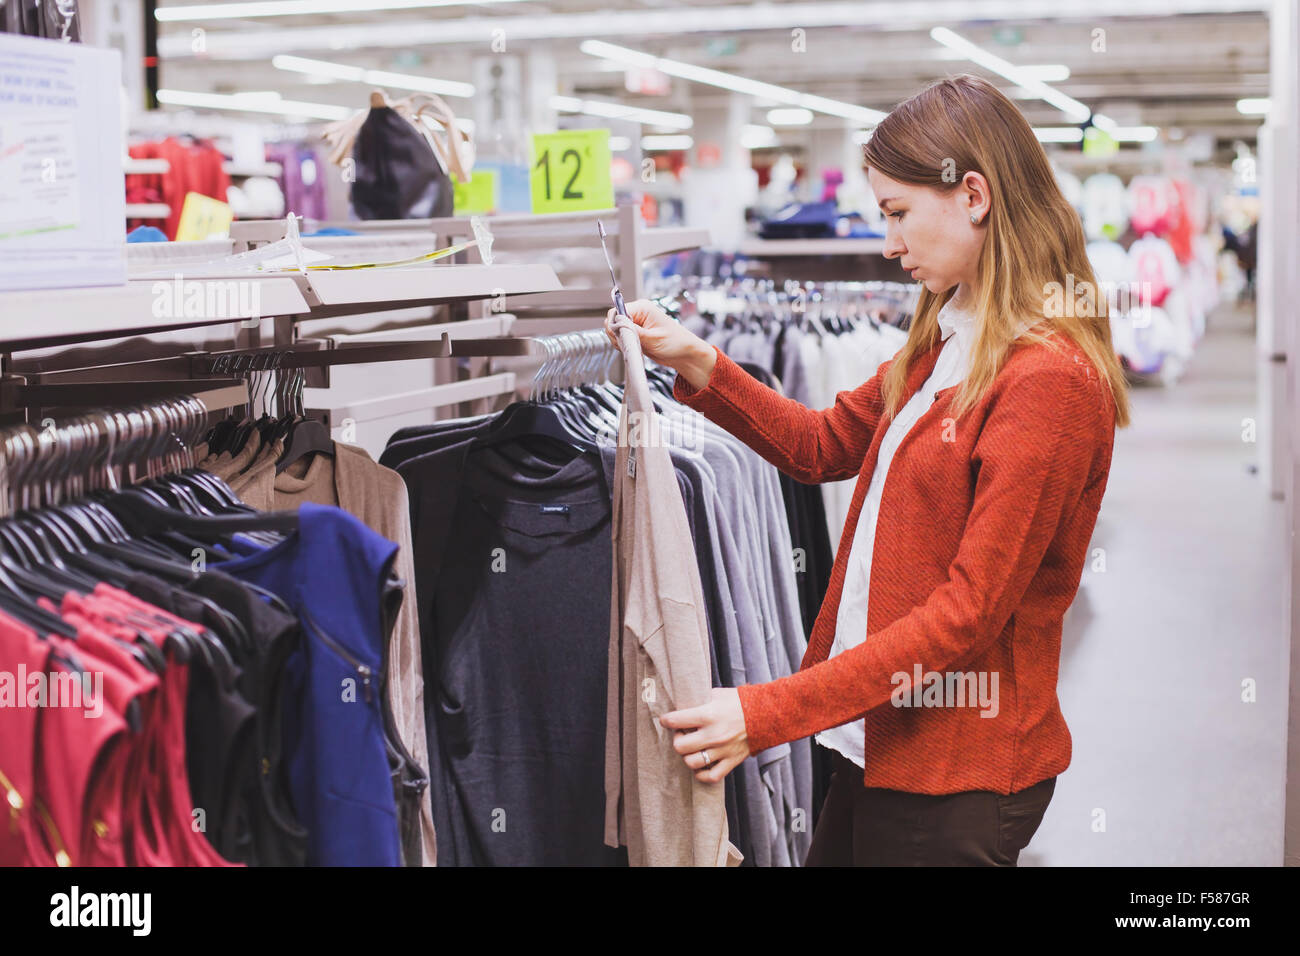 woman choosing clothes in the shop - Stock Image